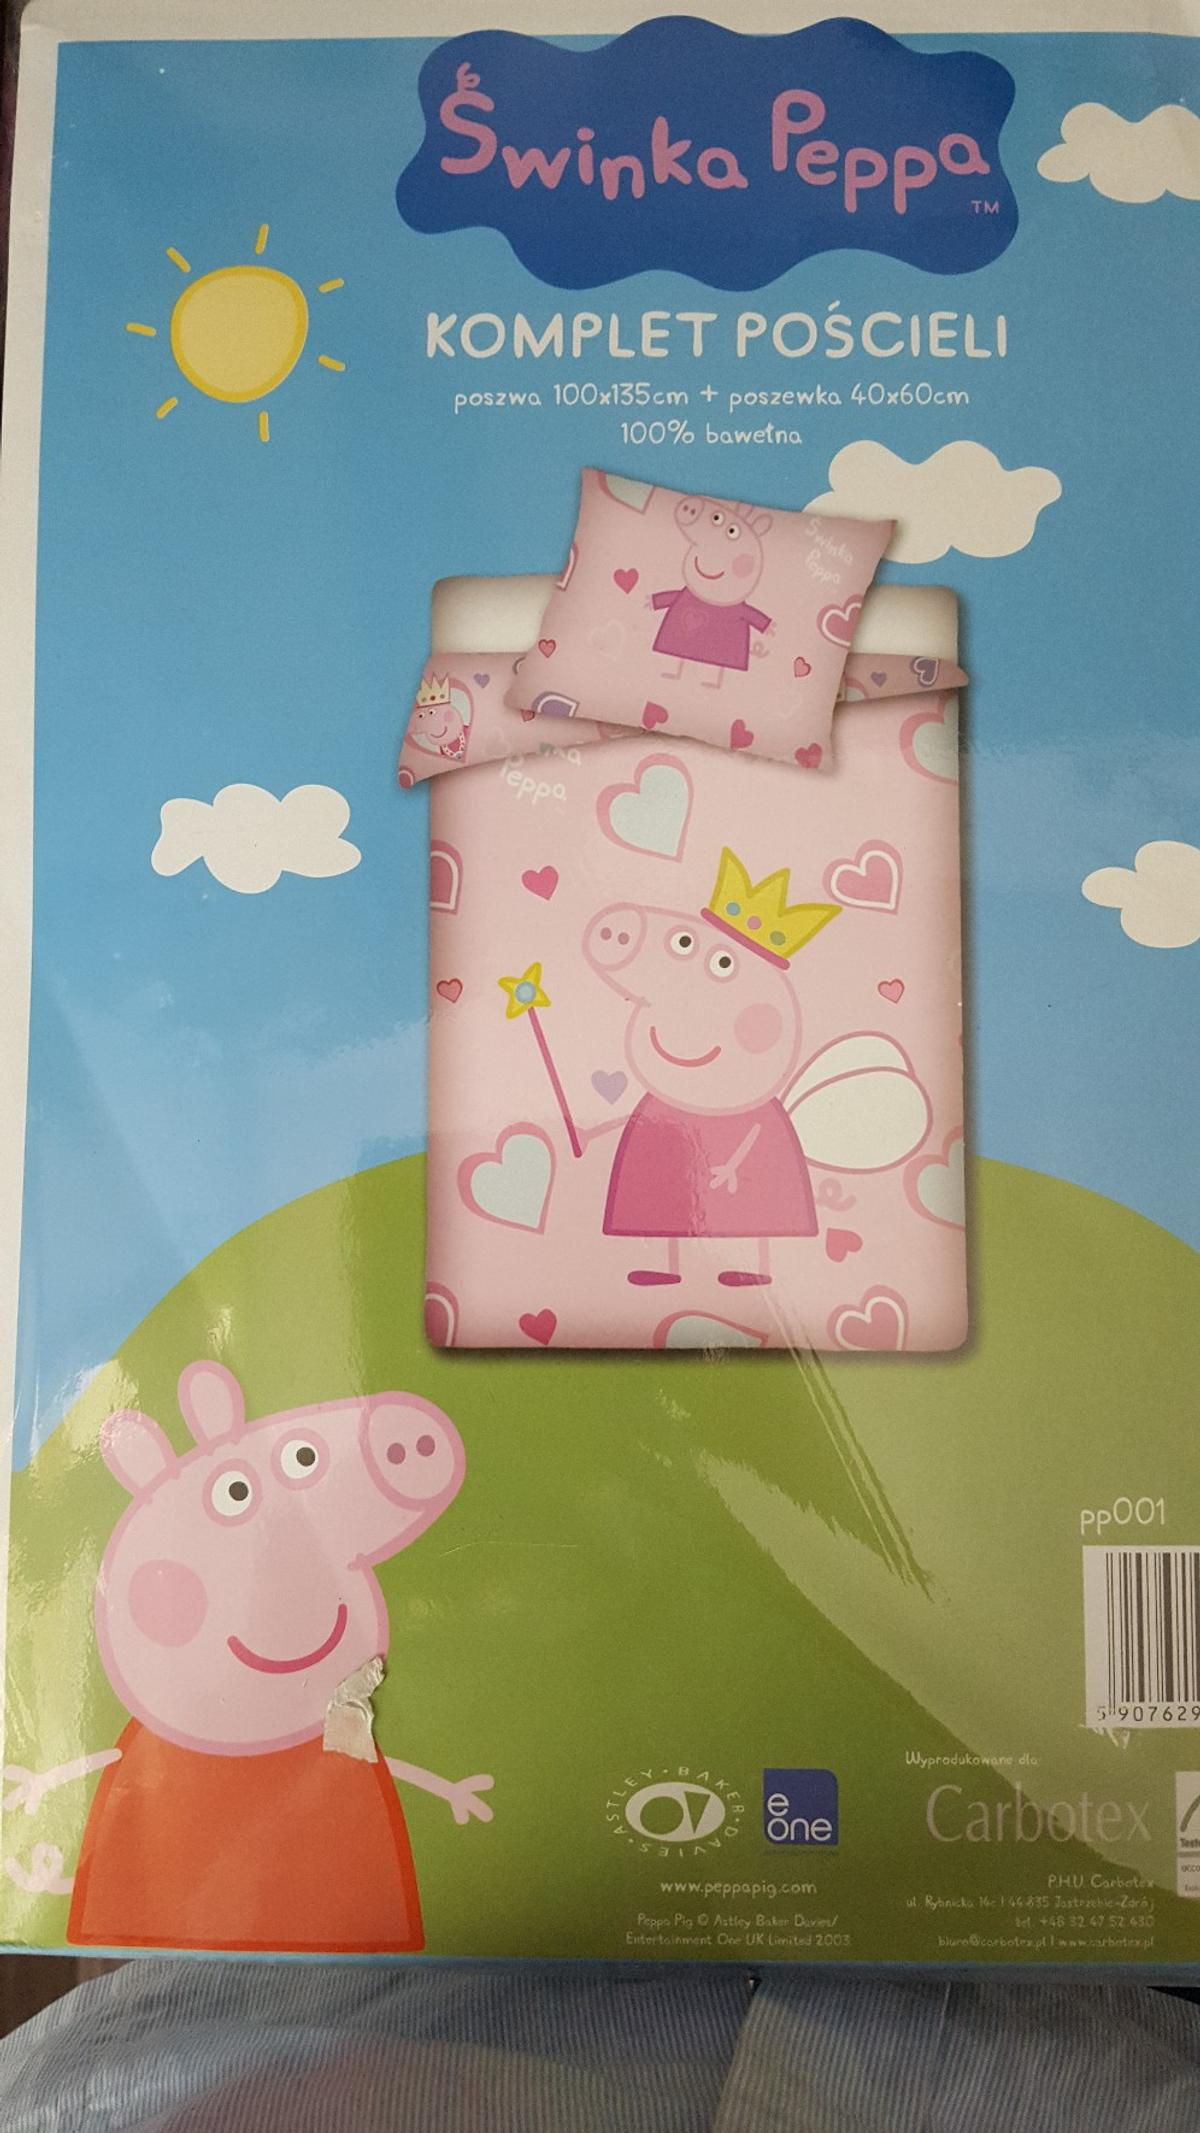 Peppa Wutz Bettwäsche Peppa Wutz Bettwäsche *neu* In 64295 Darmstadt For €25.00 For Sale | Shpock